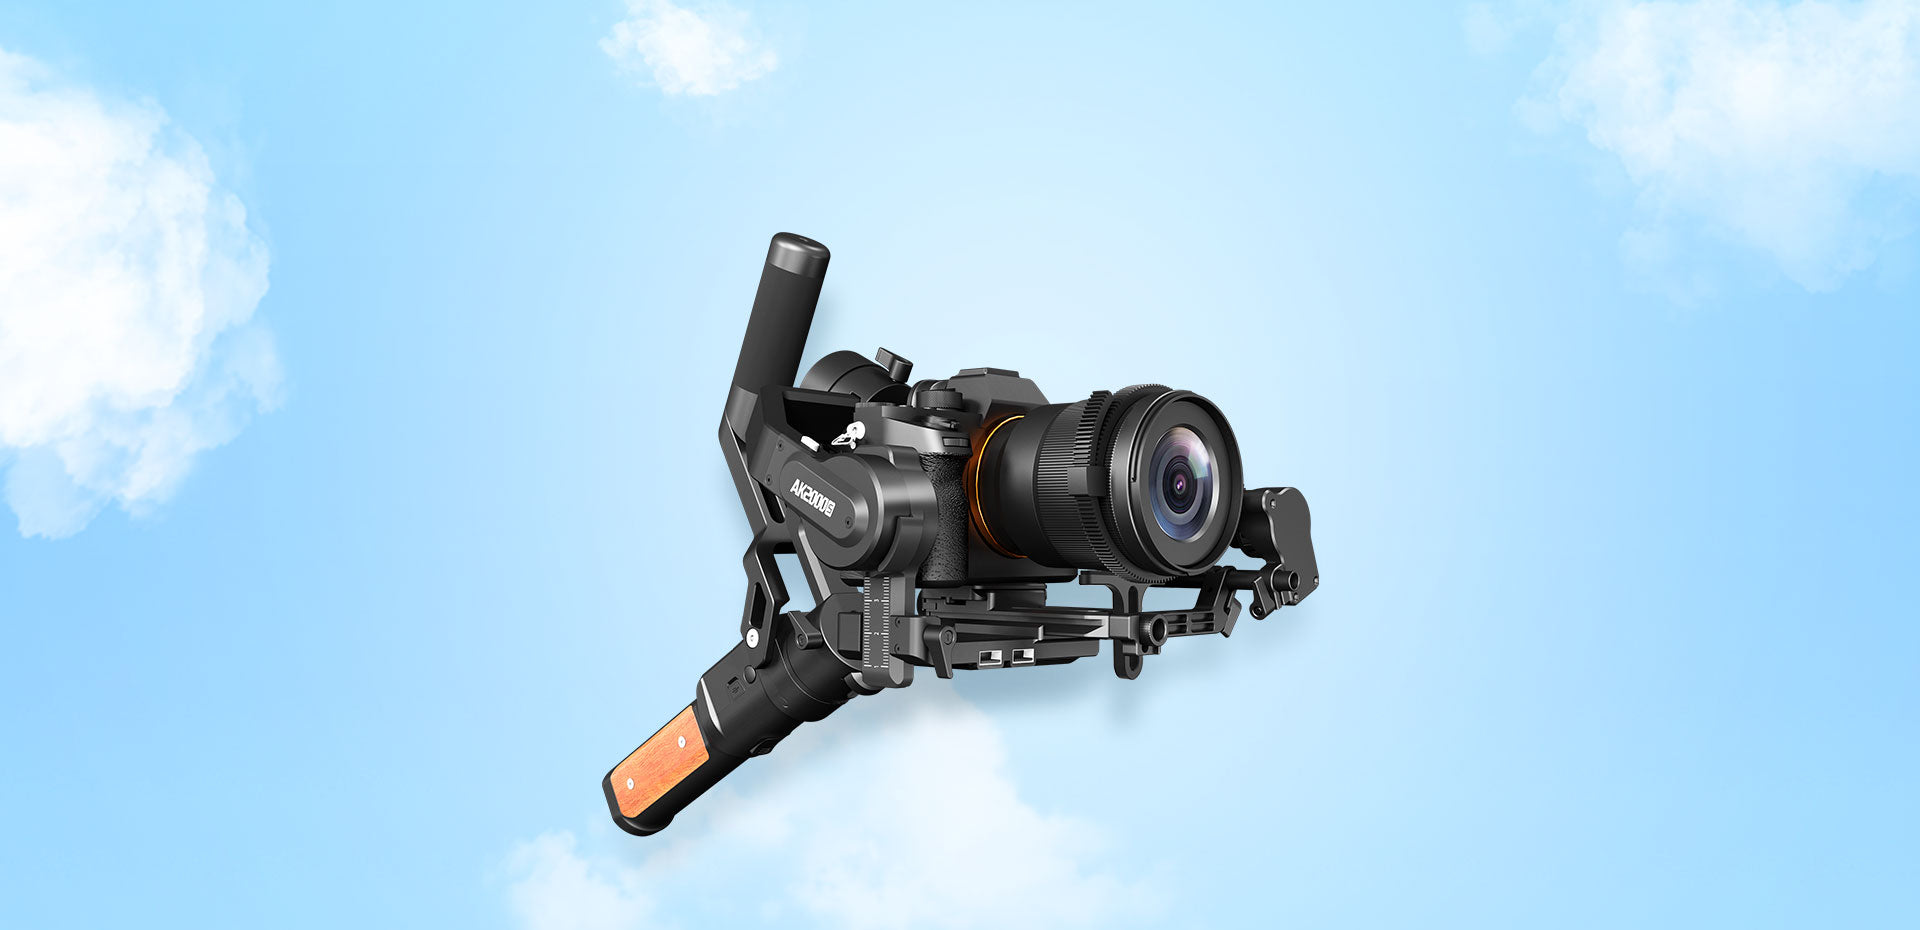 FeiyuTech-AK2000S-3-Axis-USB-Wi-Fi-Control-Handheld-Stabilized-Gimbal-Mirrorless-DSLR-Camera-listing-cover-slide